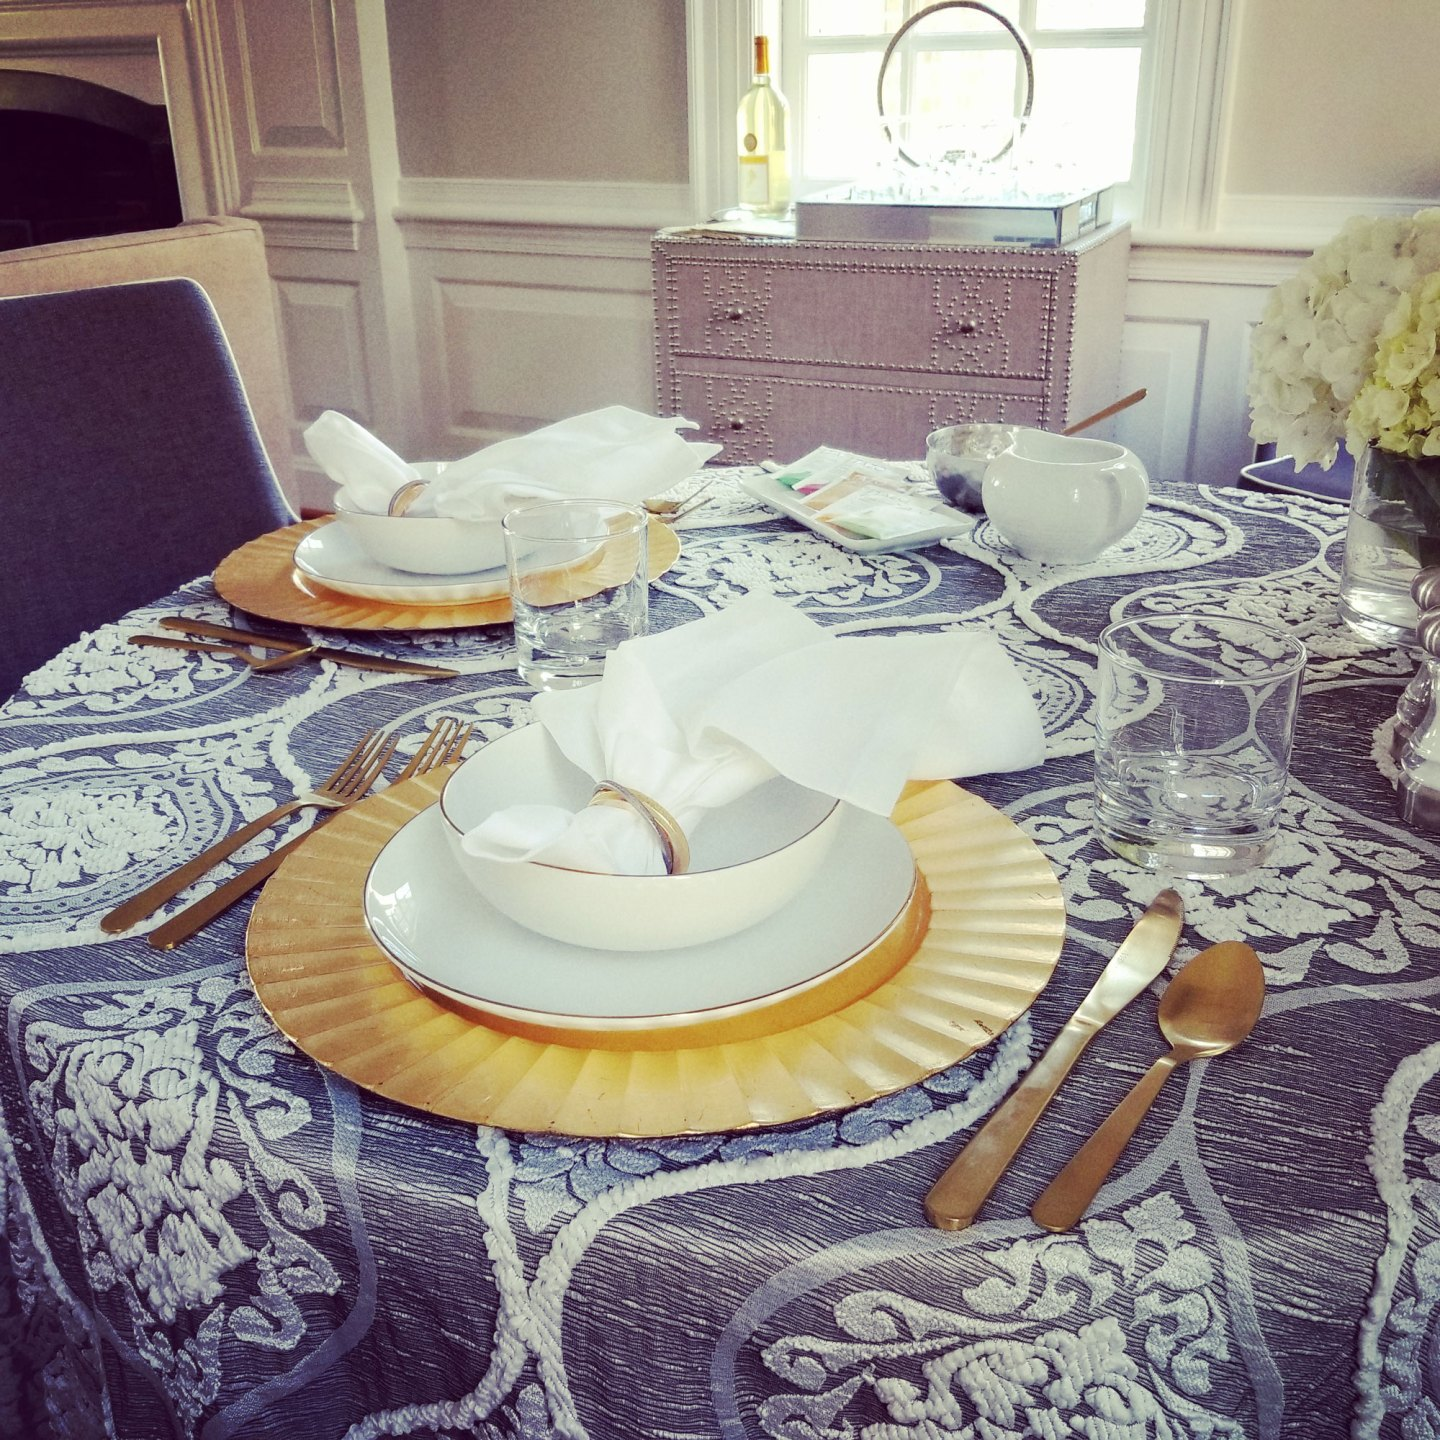 bed-and-dreakfast-in-DC Black-Owned Bed & Breakfast in Maryland: How to Host an Event in an Intimate Venue